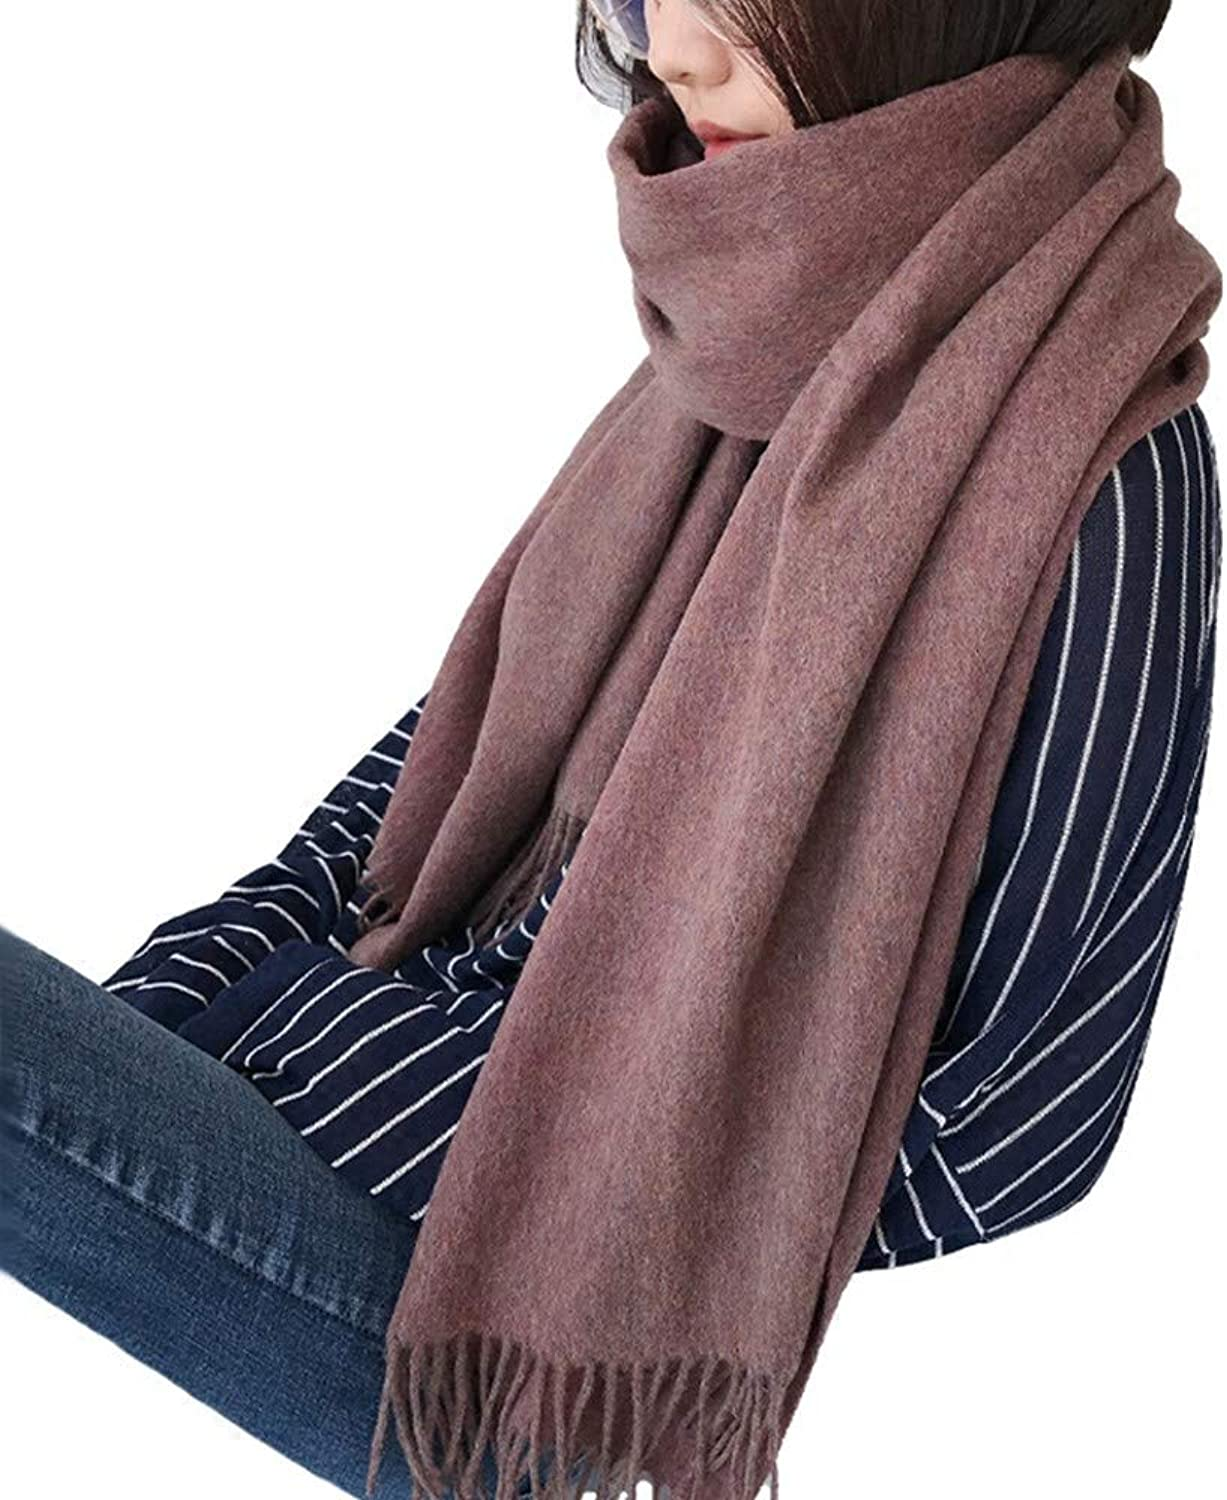 Hyy Scarf Scarf Autumn And Winter Students Keep Warm Collar Solid color Thick Shawl Female